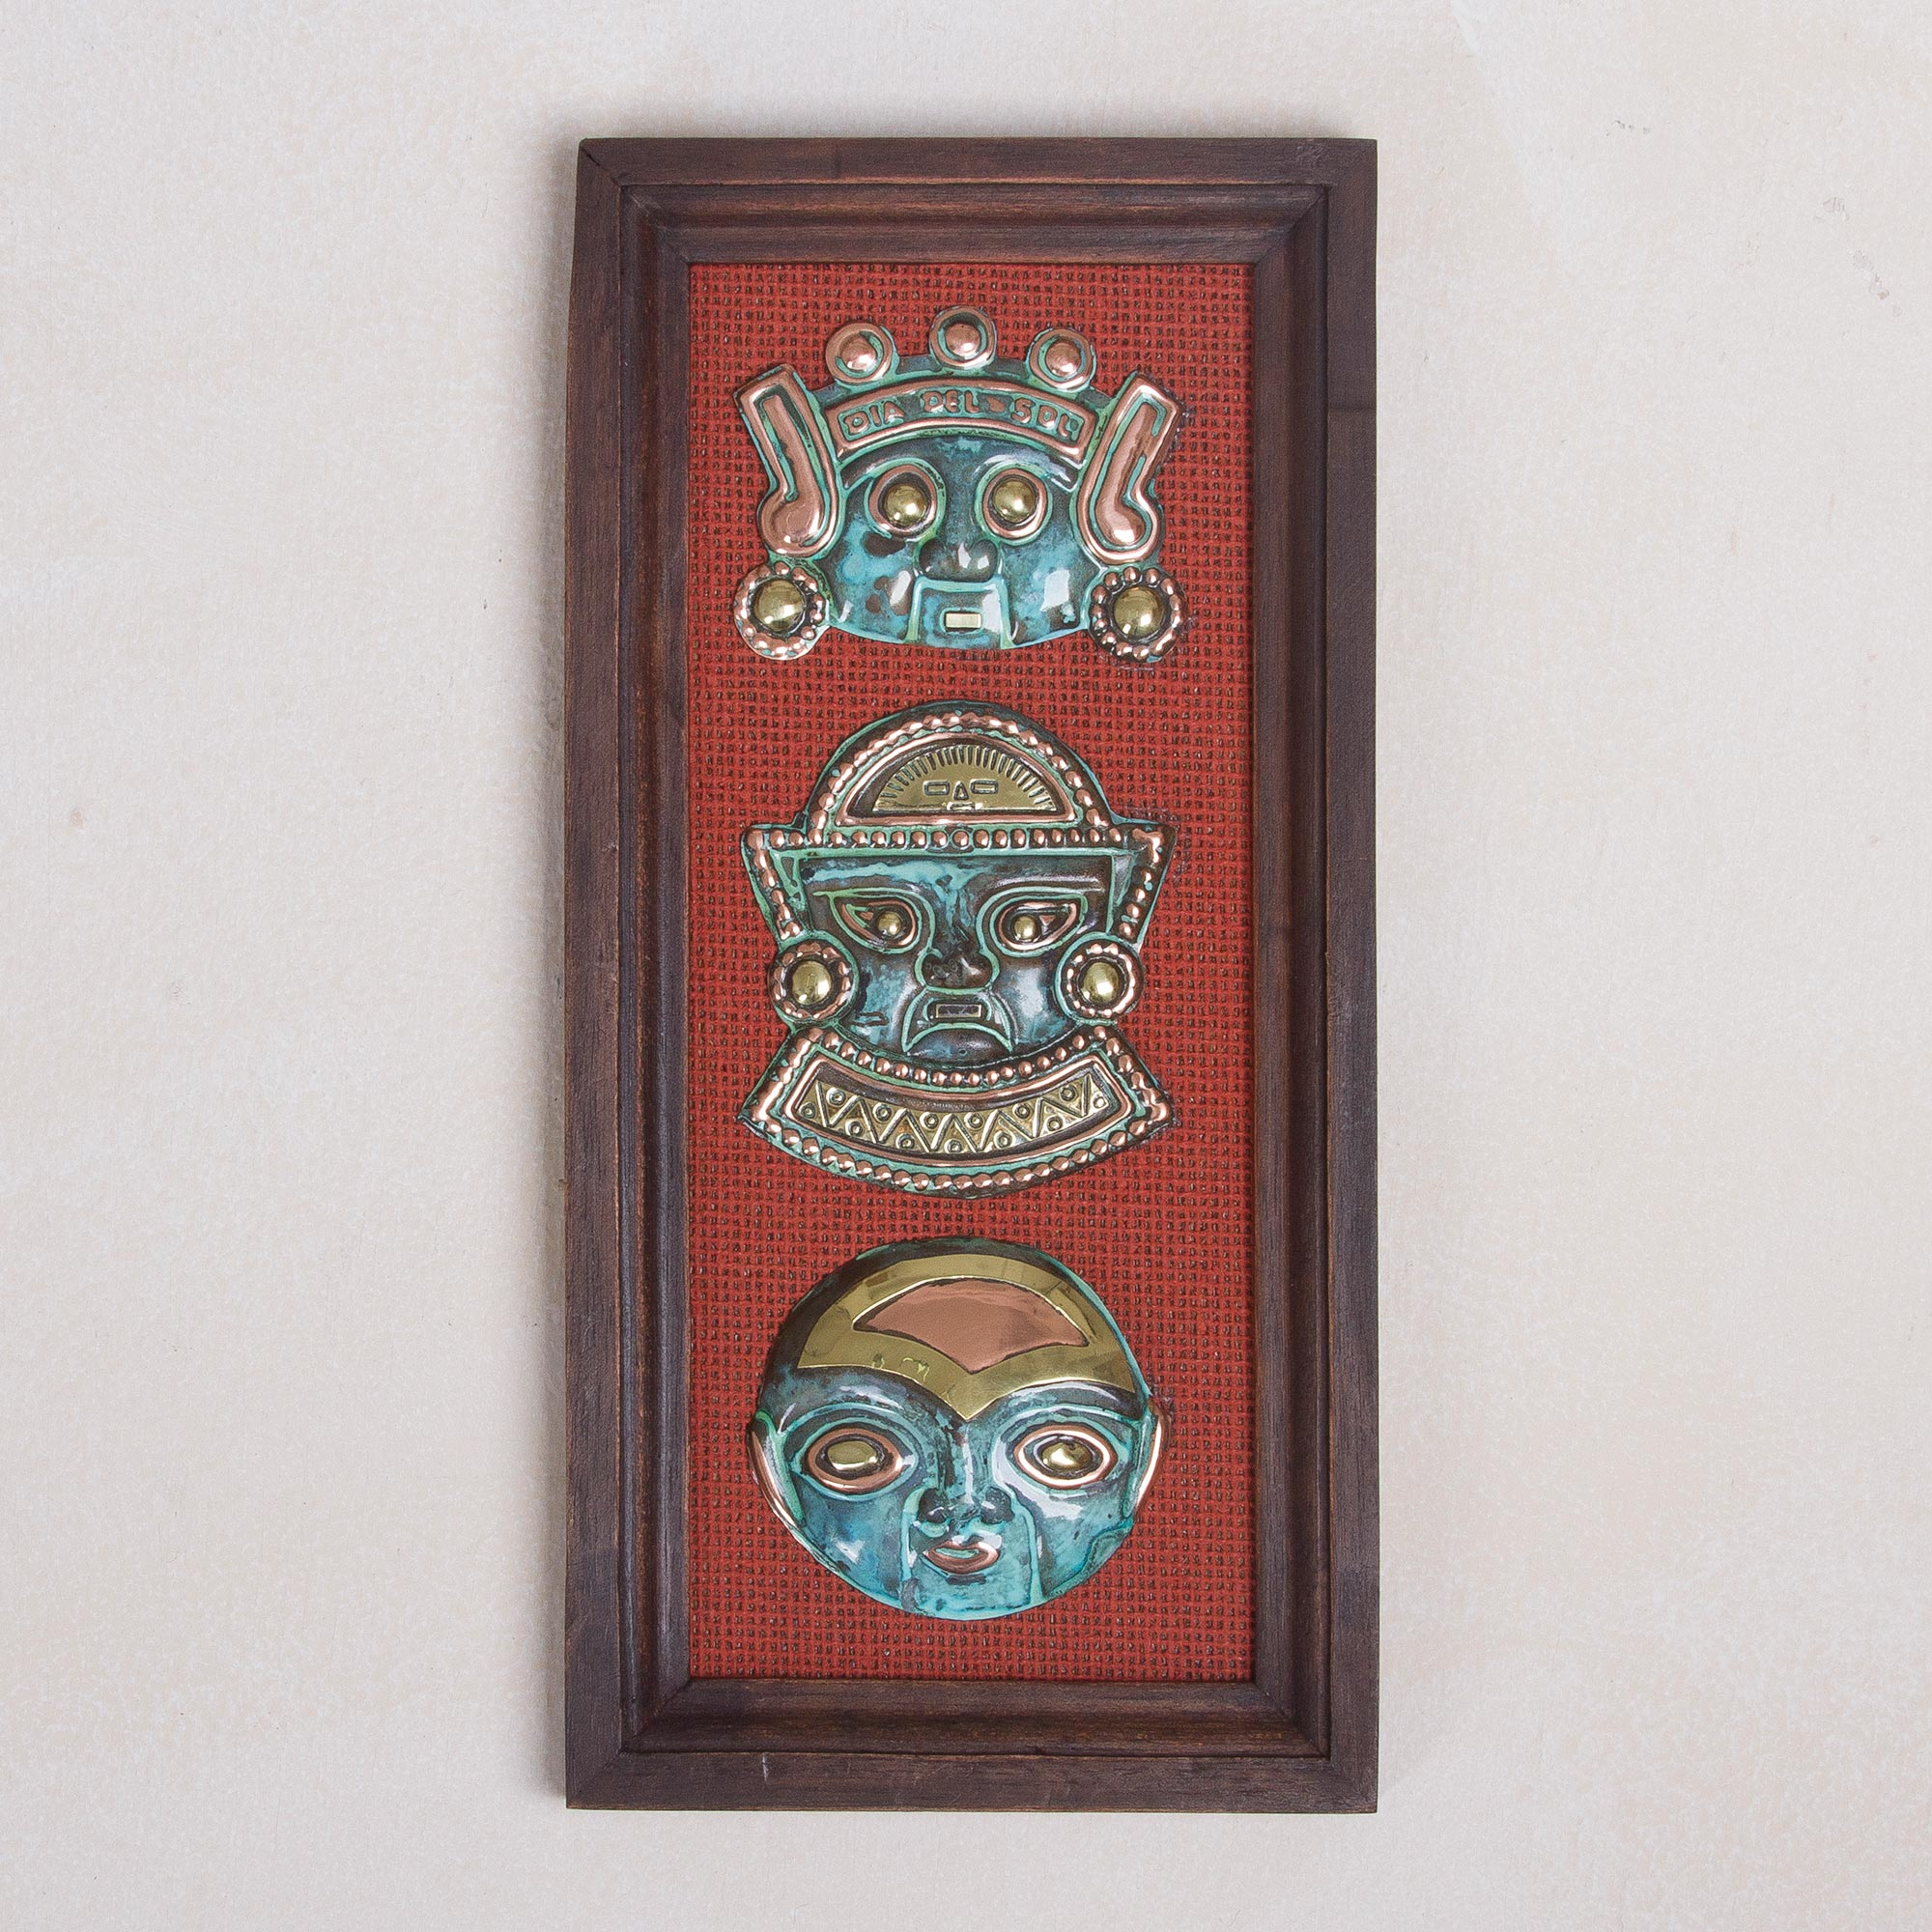 Peruvian Culture Copper and Bronze Wall Sculpture of Ancient Masks from Peru Pairing Area Rugs